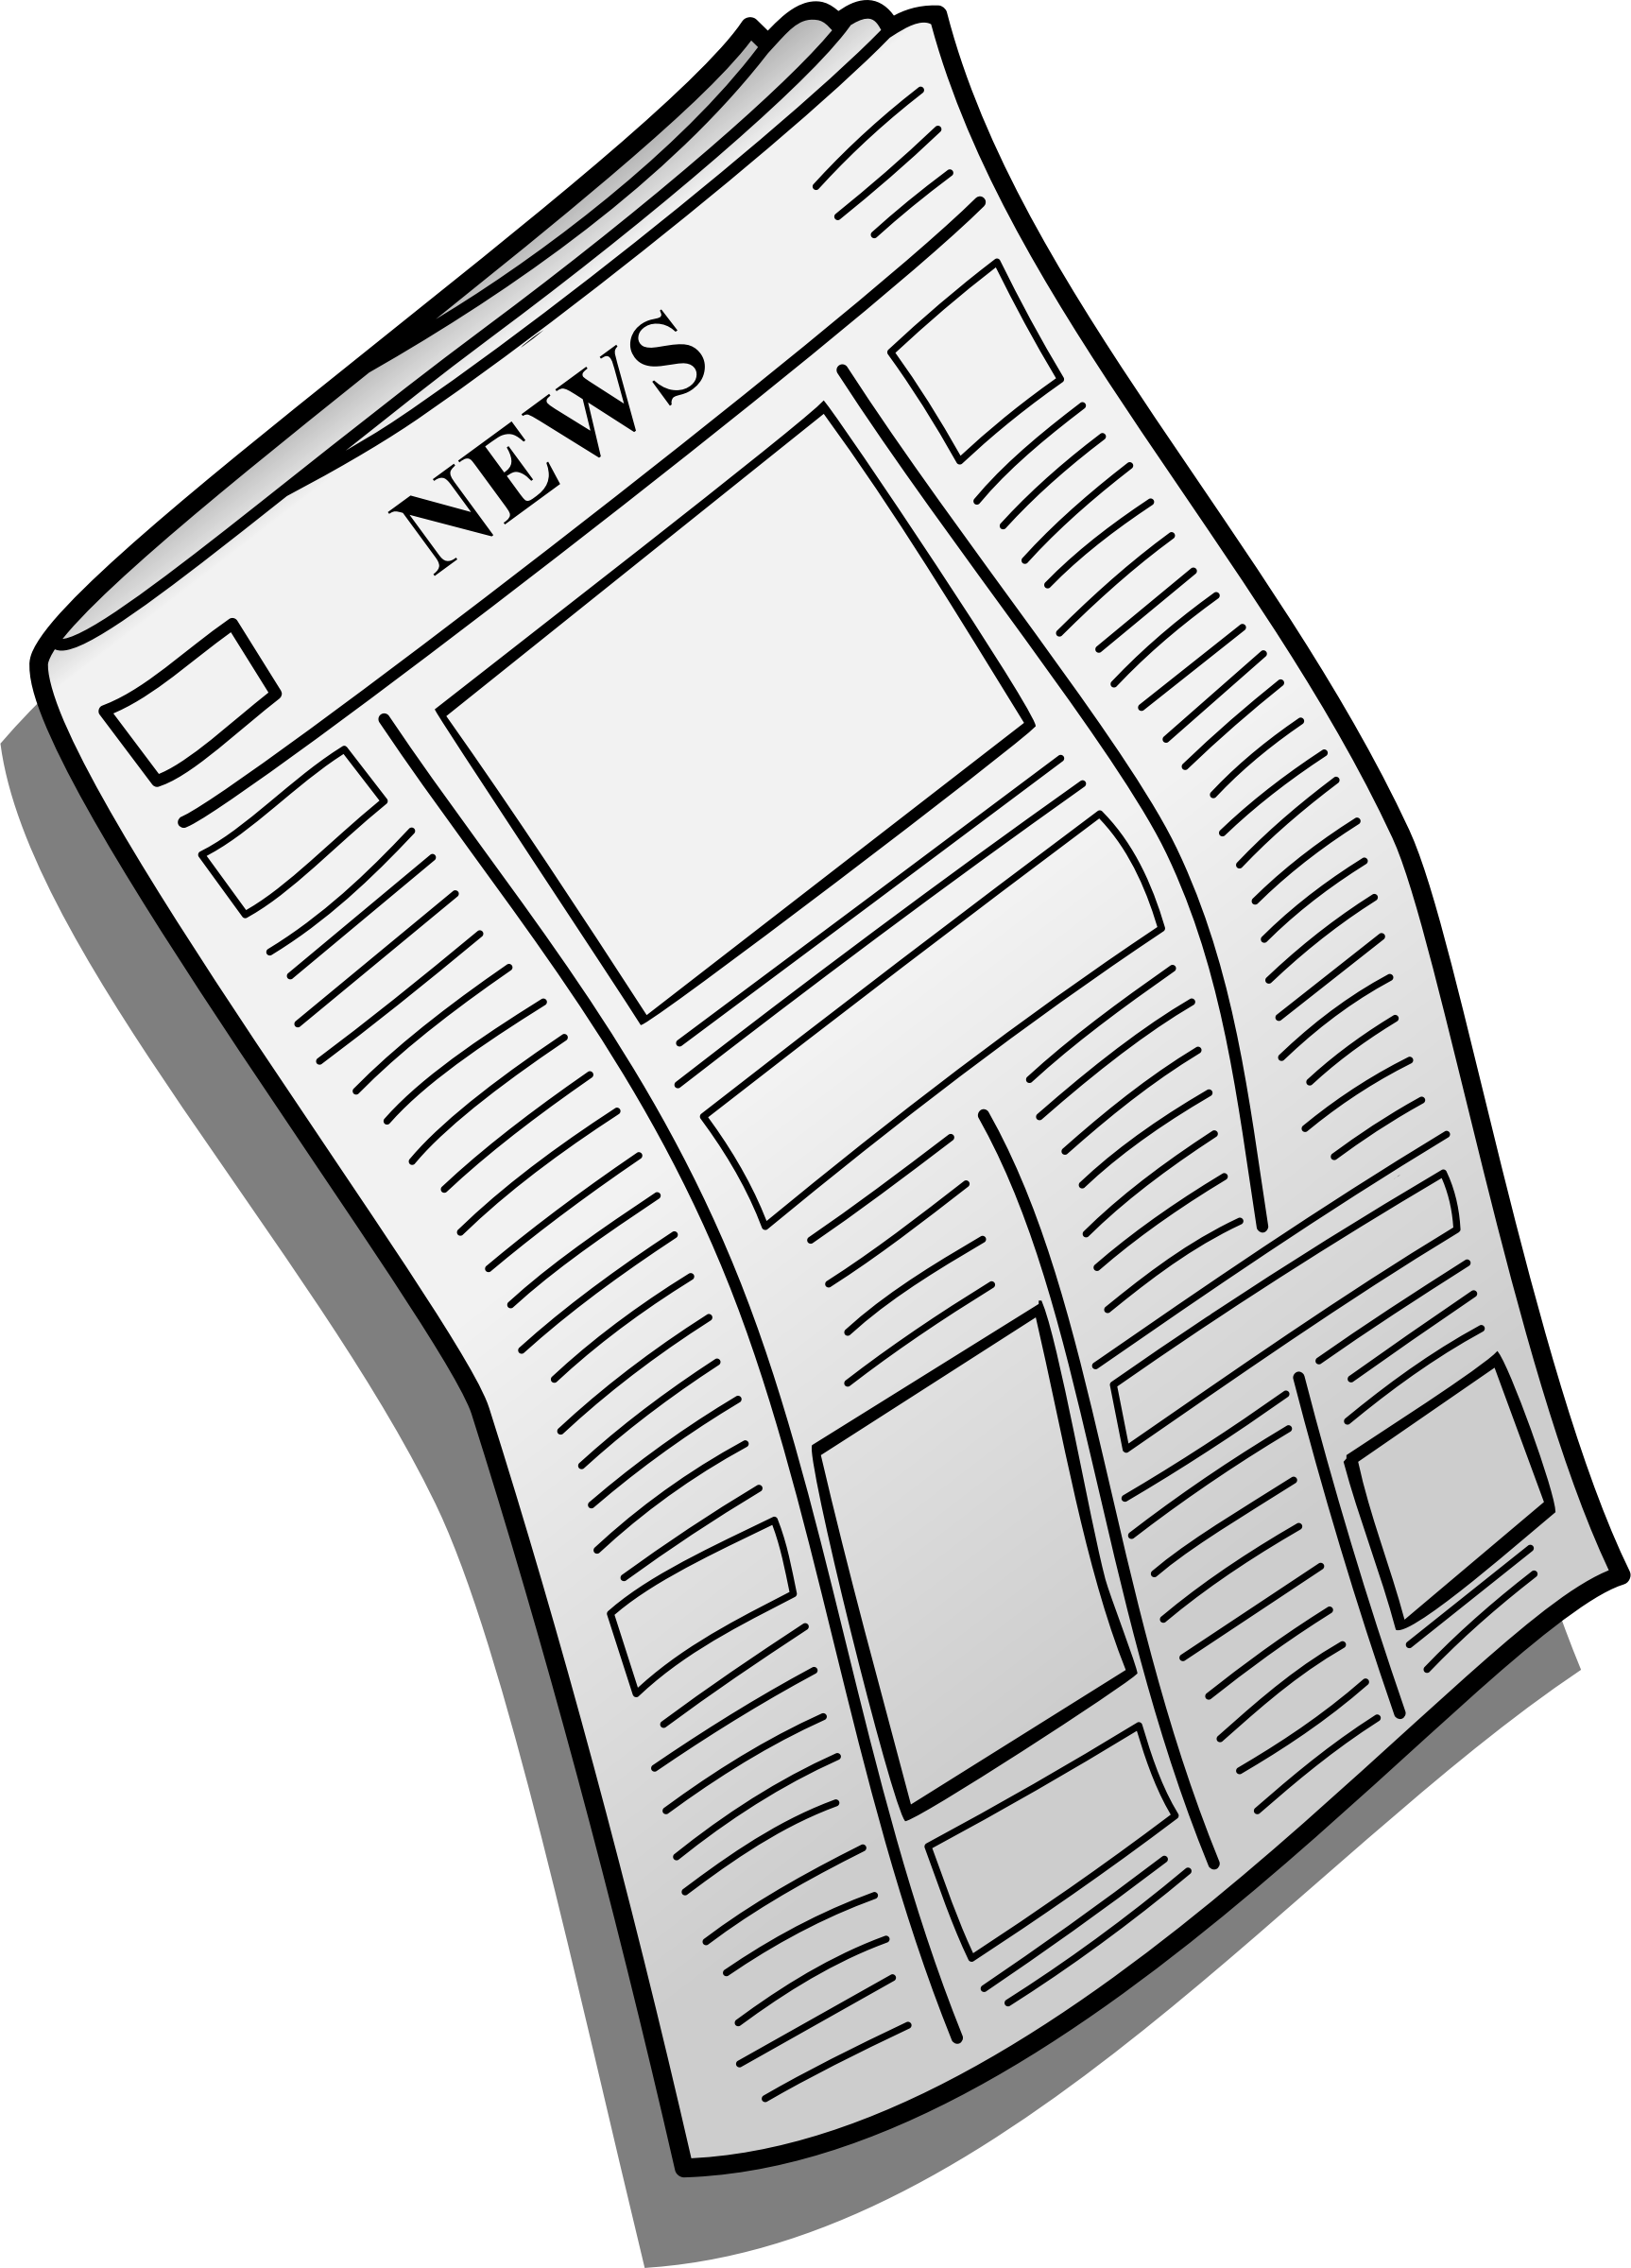 graphic transparent library Newspaper drawing at getdrawings. News clipart.